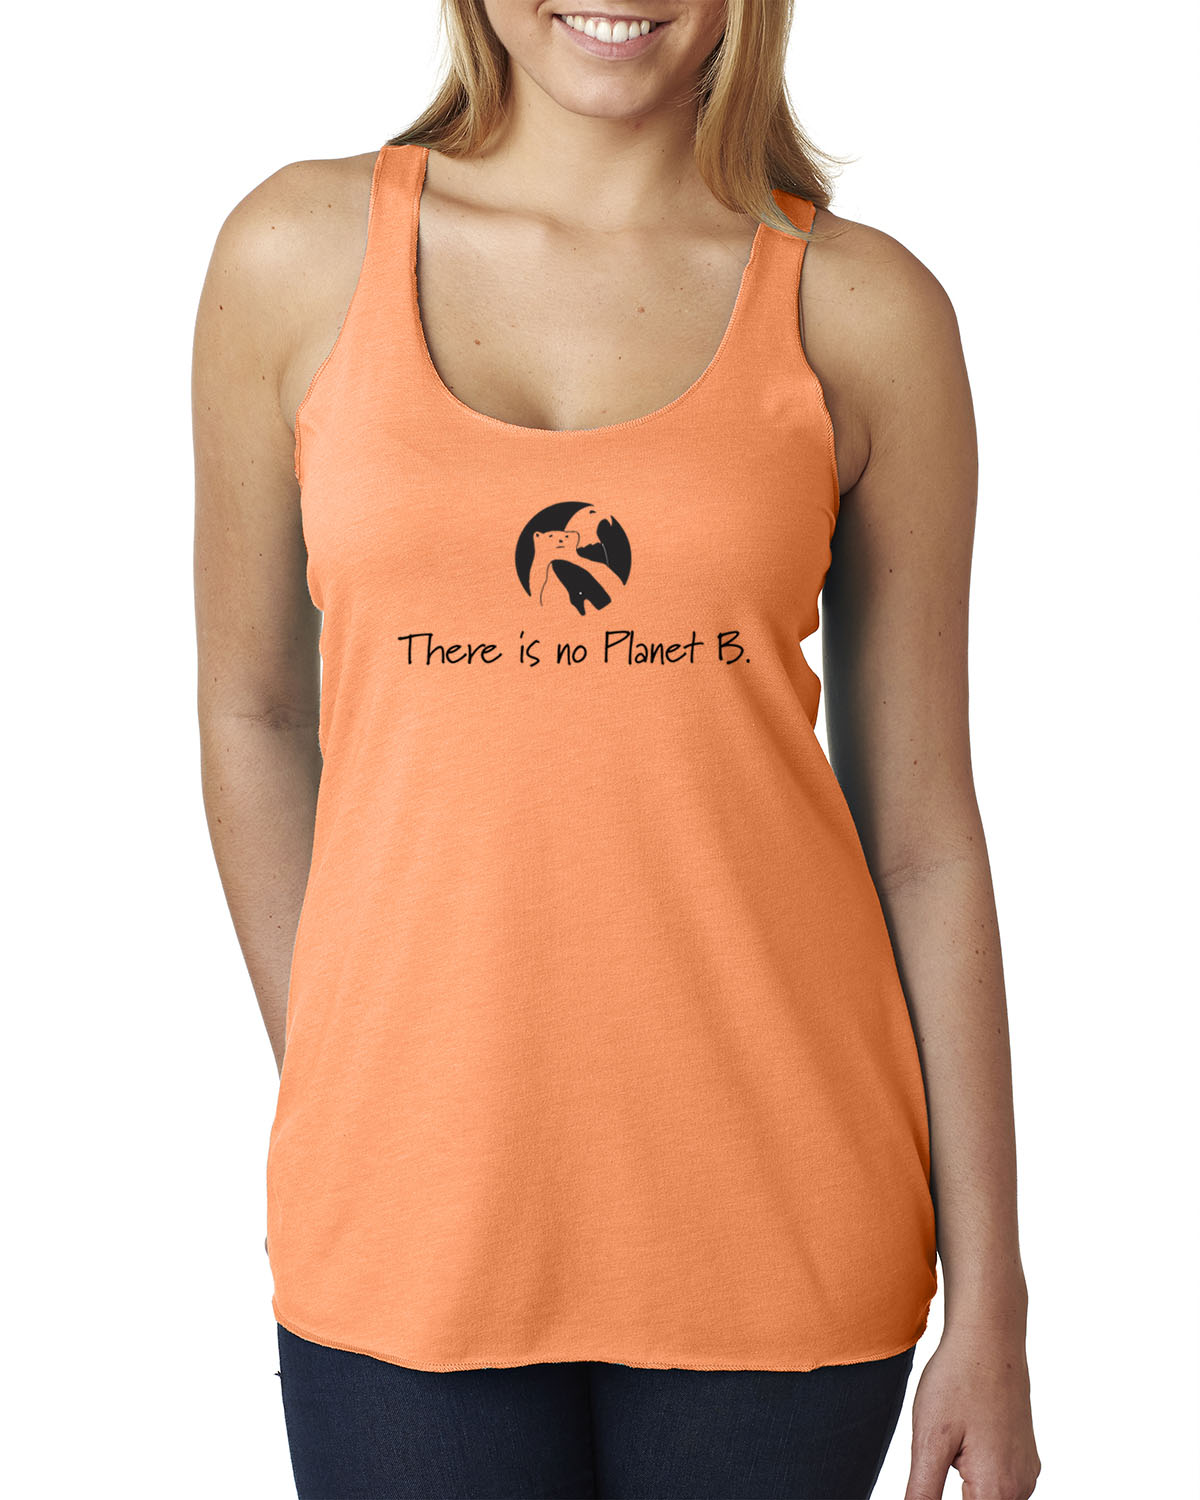 There is No Planet B tri-blend racer-back tank top (orange)